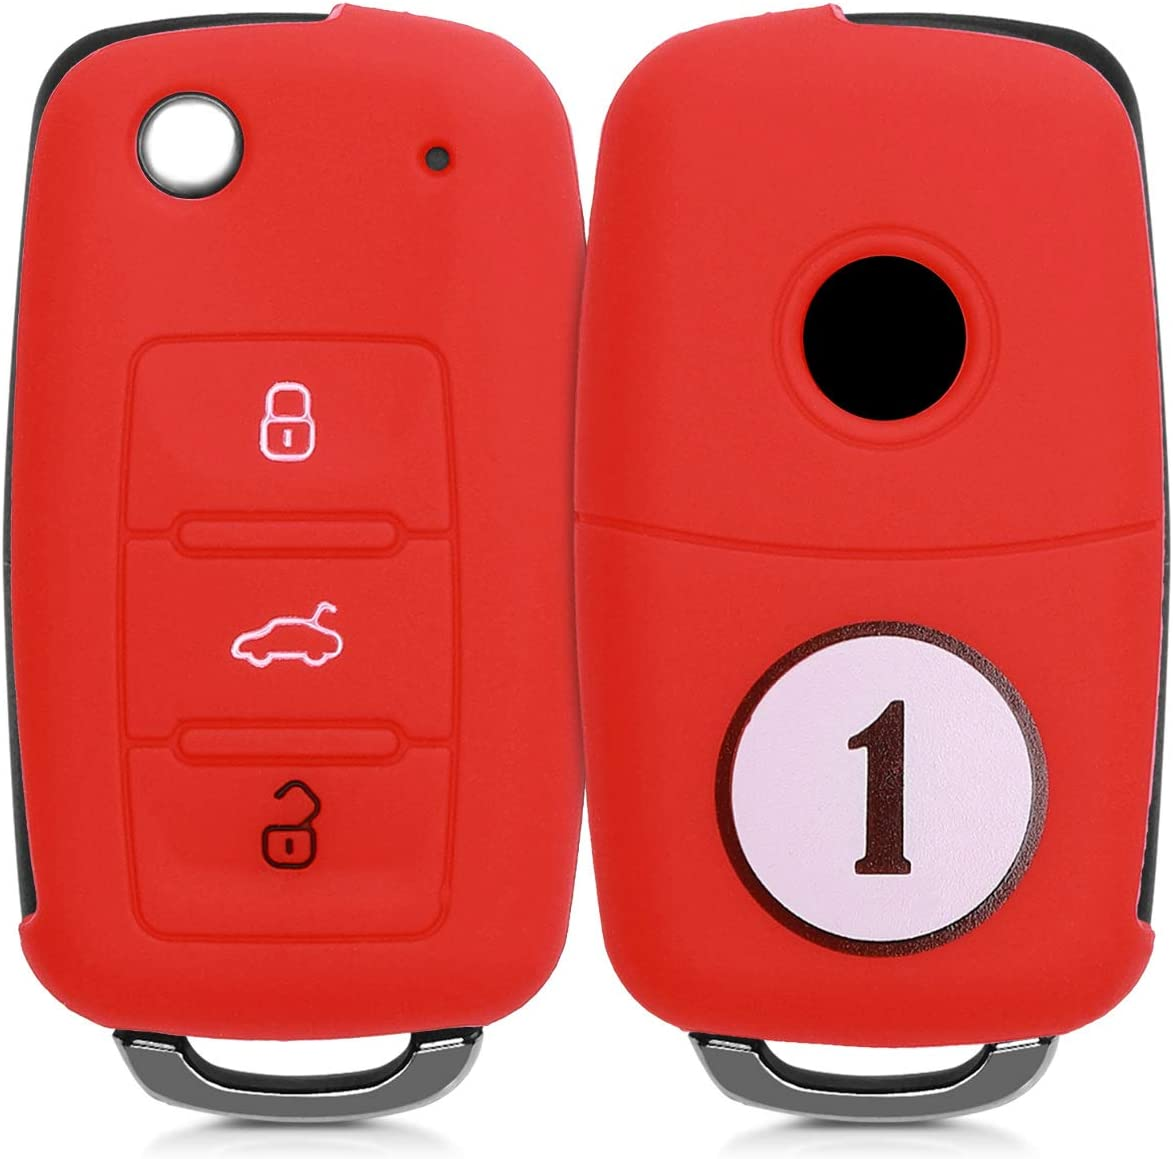 Starting Number 1 kwmobile Car Key Cover Compatible with VW Skoda Seat